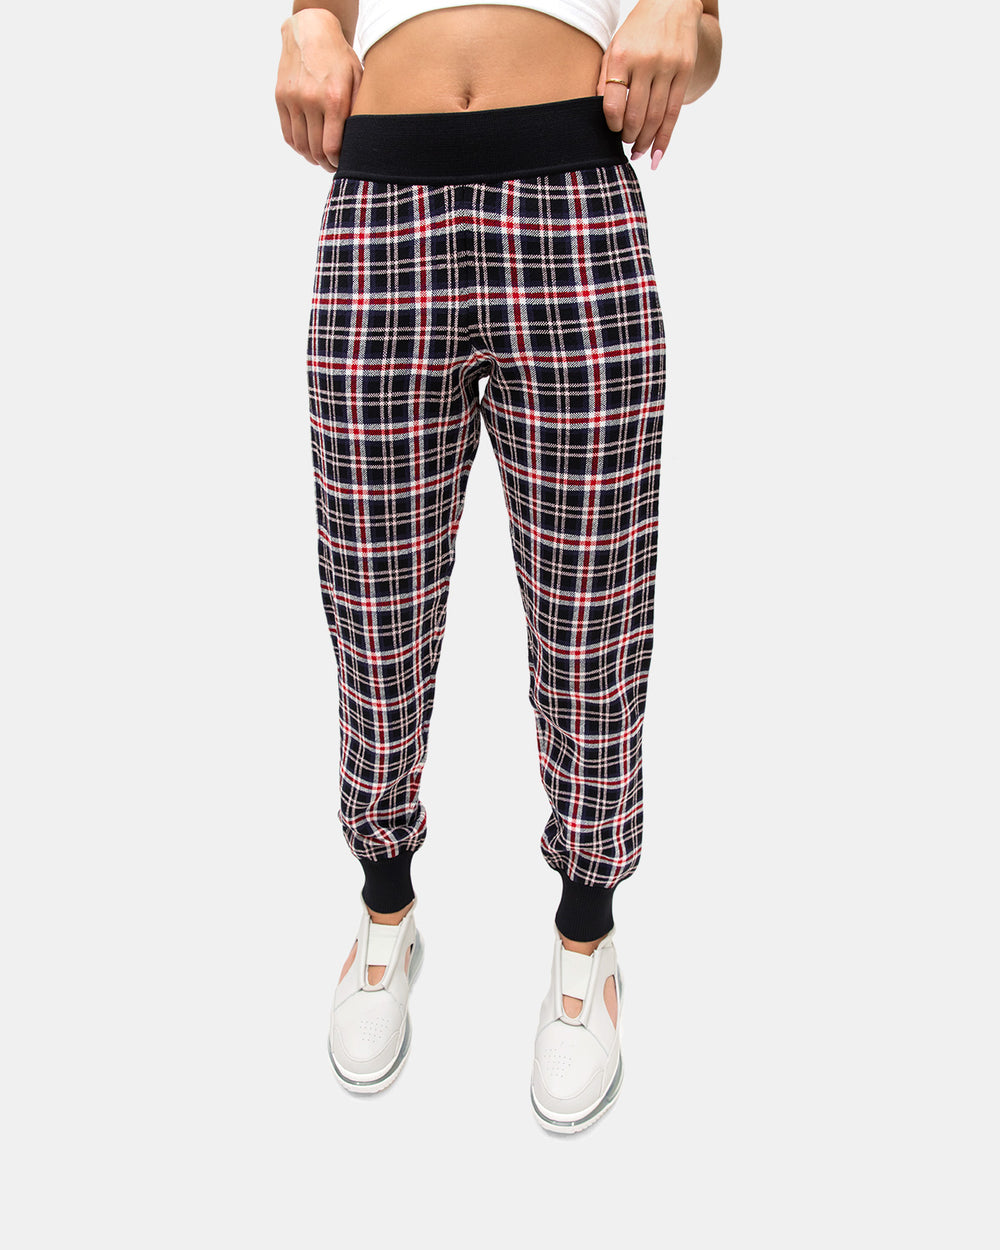 Opening Ceremony - Women's Plaid Knit Jogger Pants (Collegiate Navy | Multi)